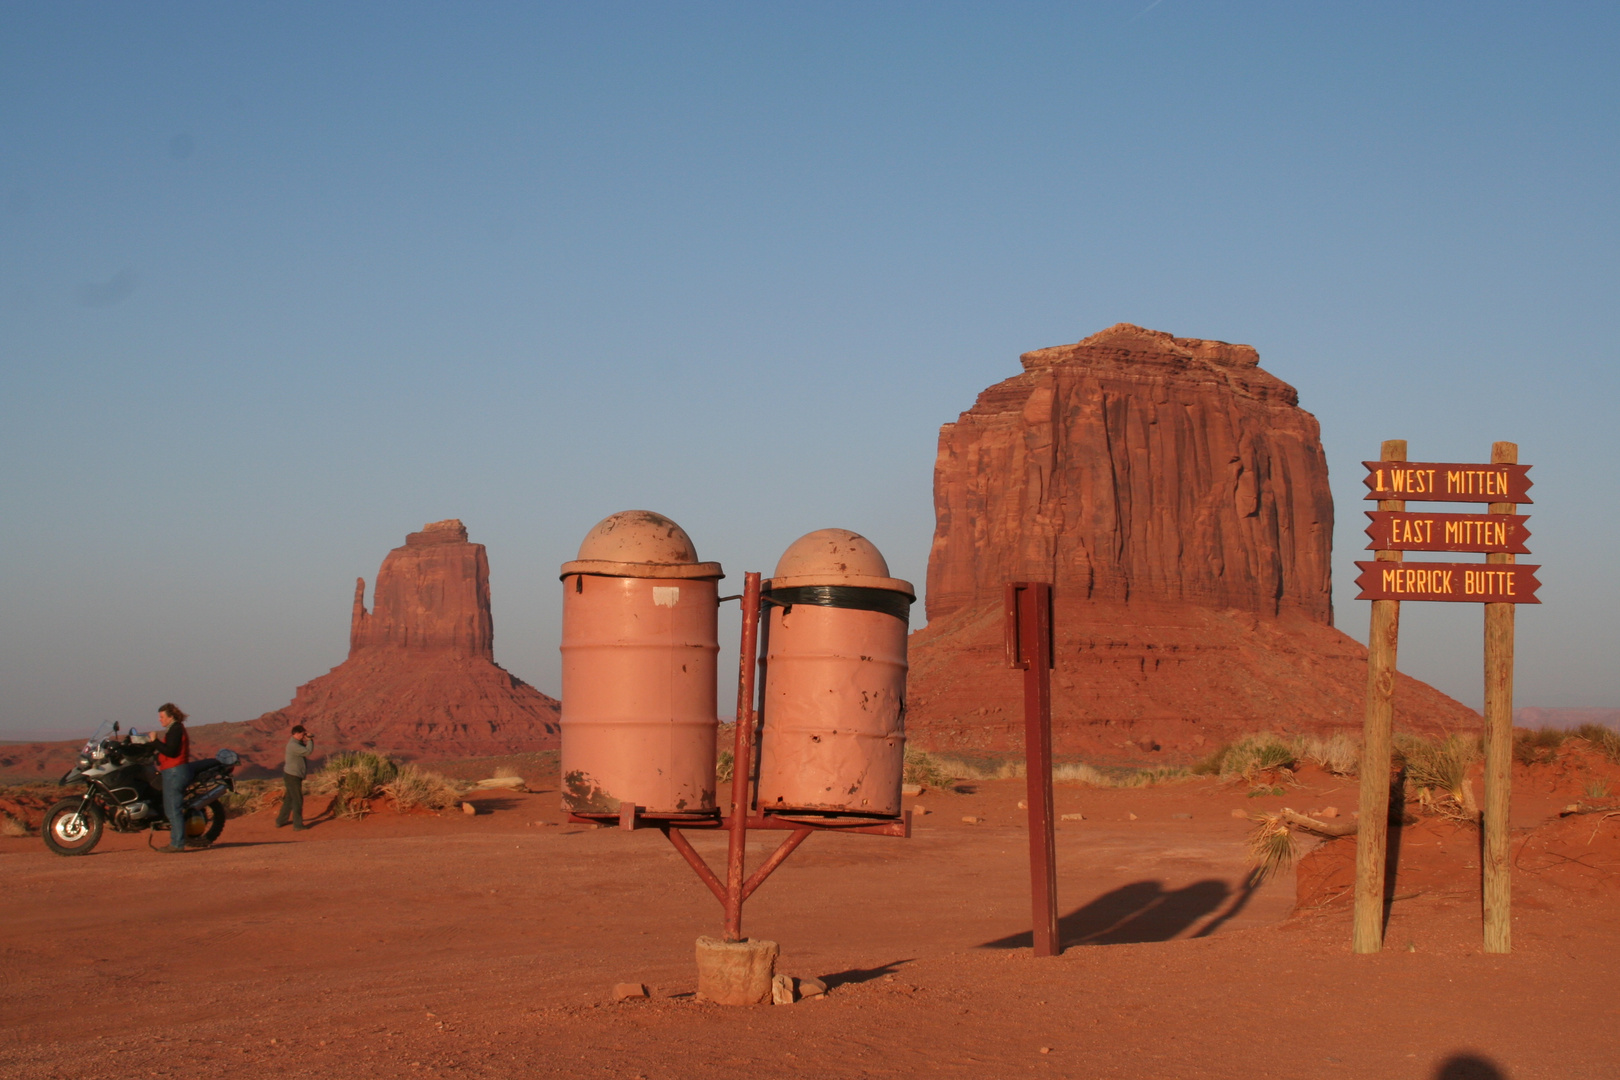 WEST MITTEN im Monument Valley USA